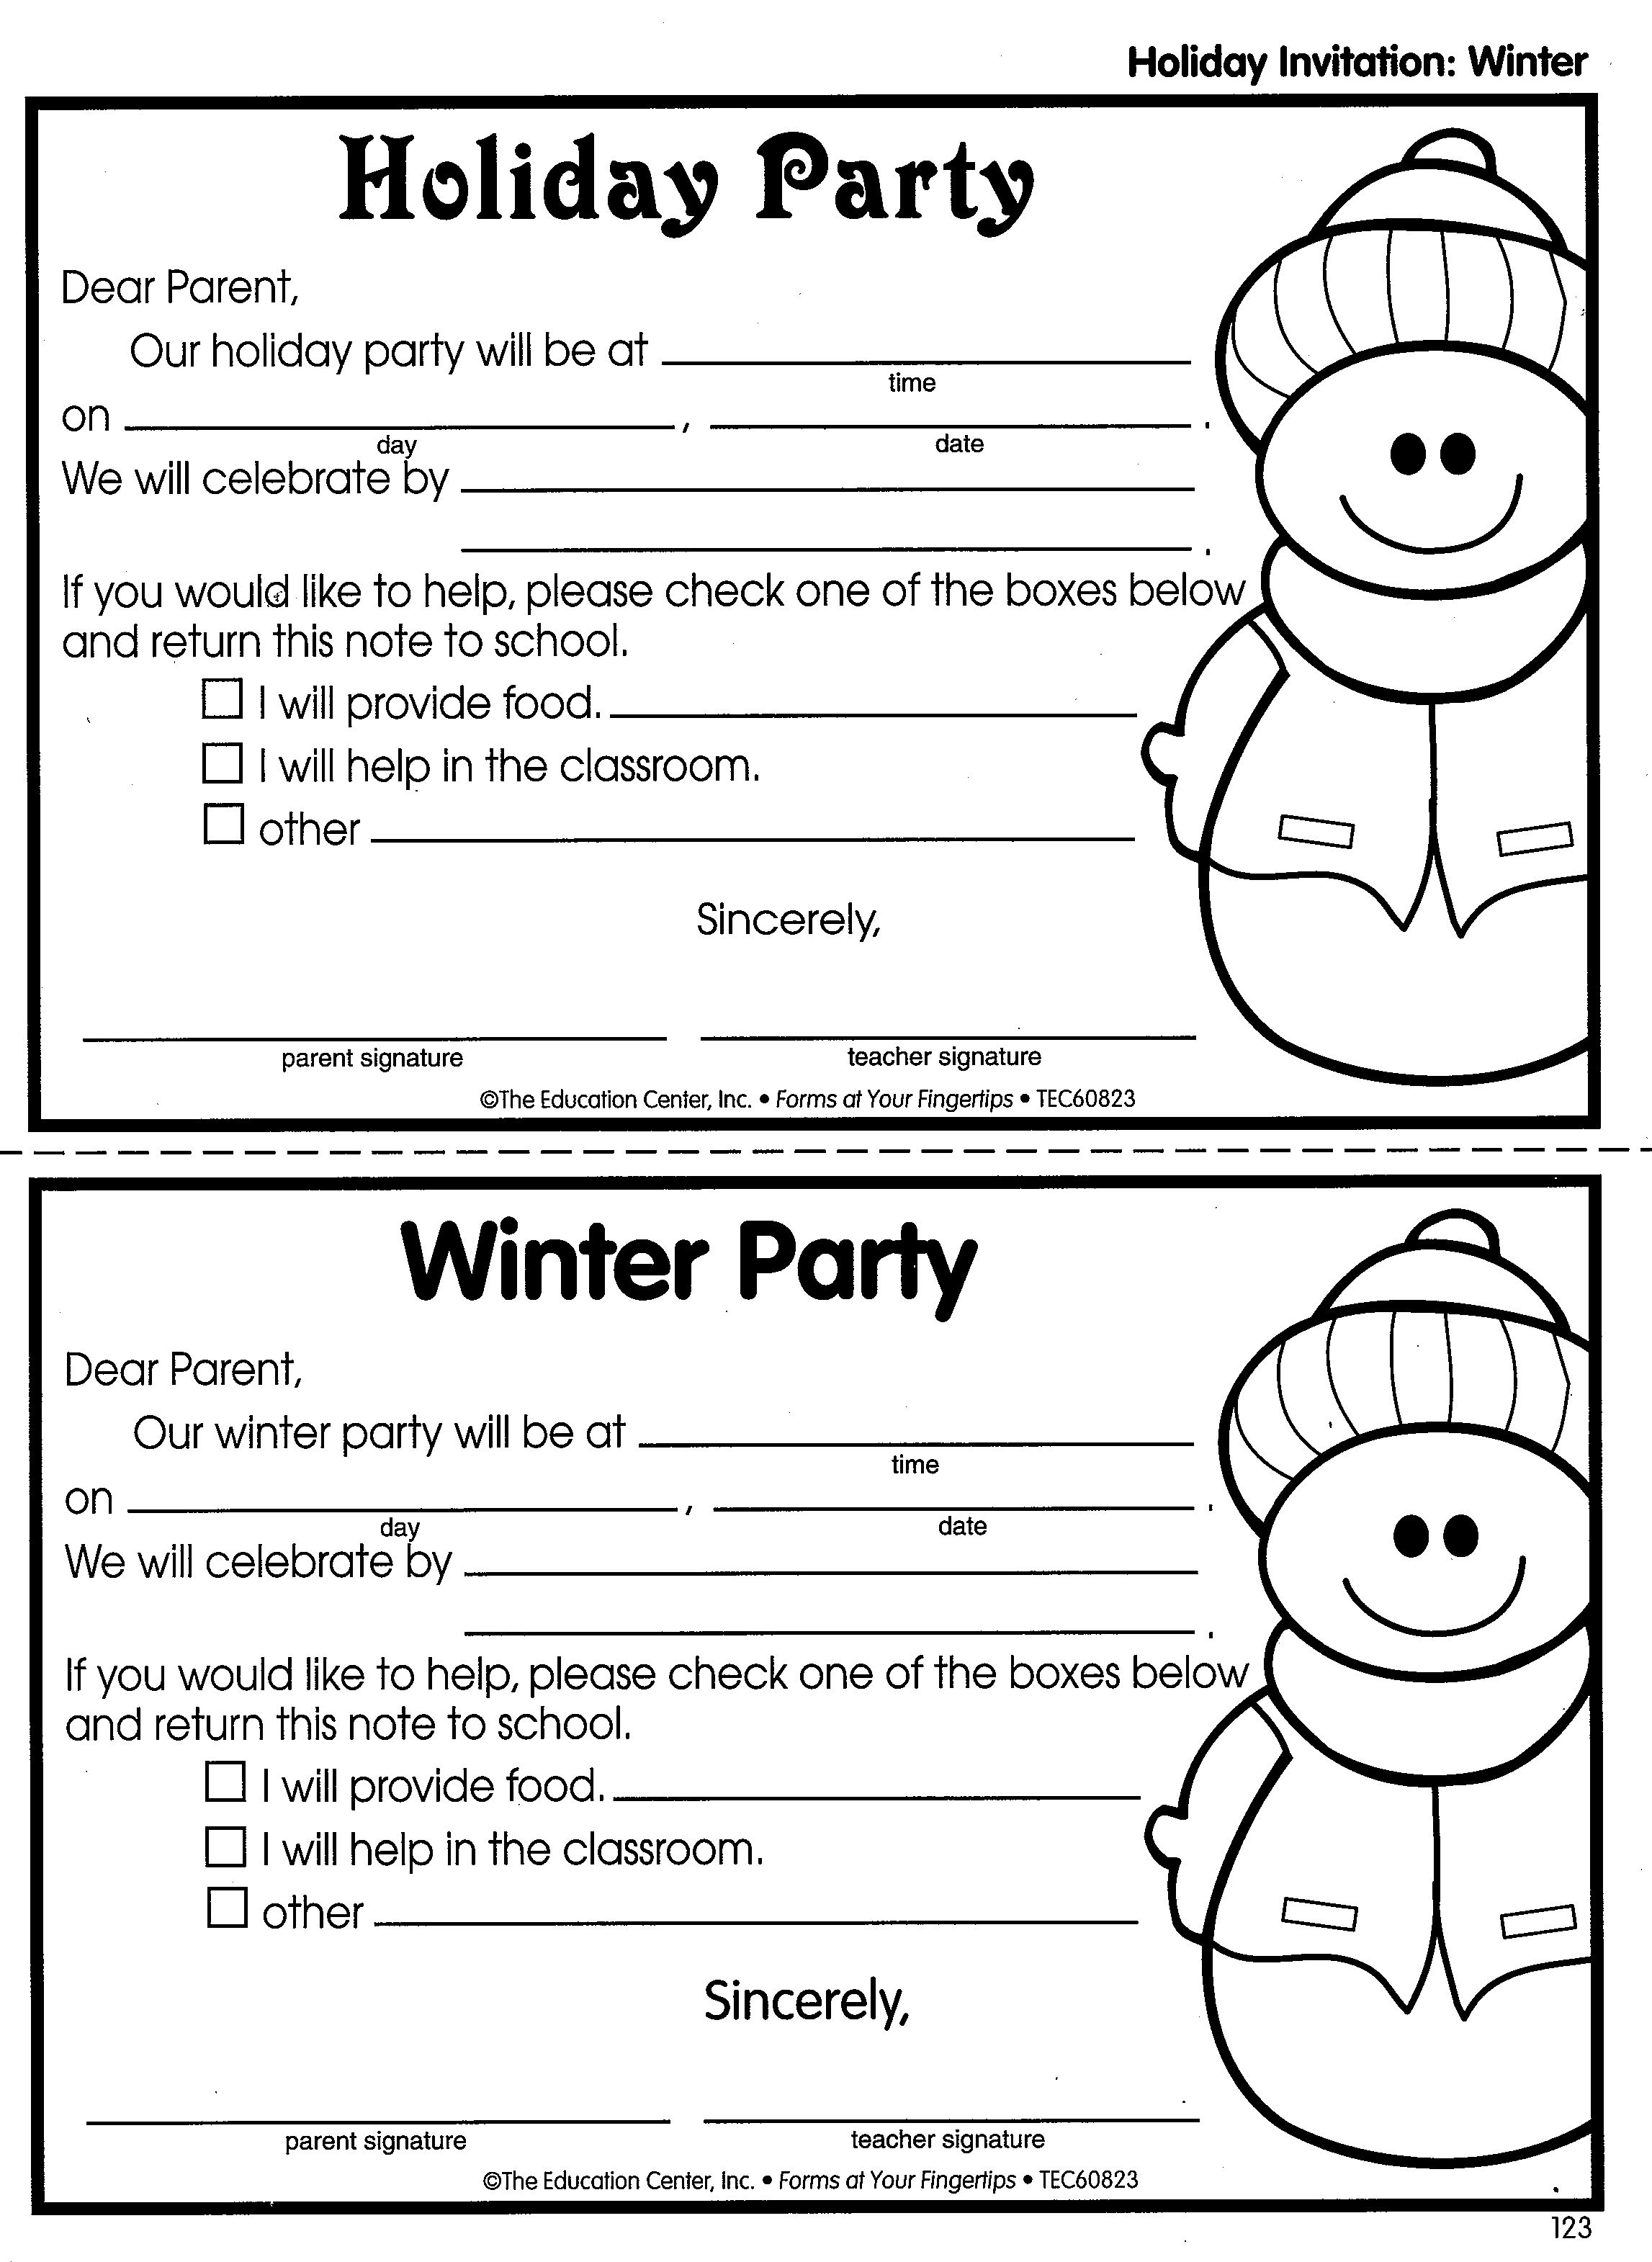 Holiday Party Winter Party Classroom Invitations